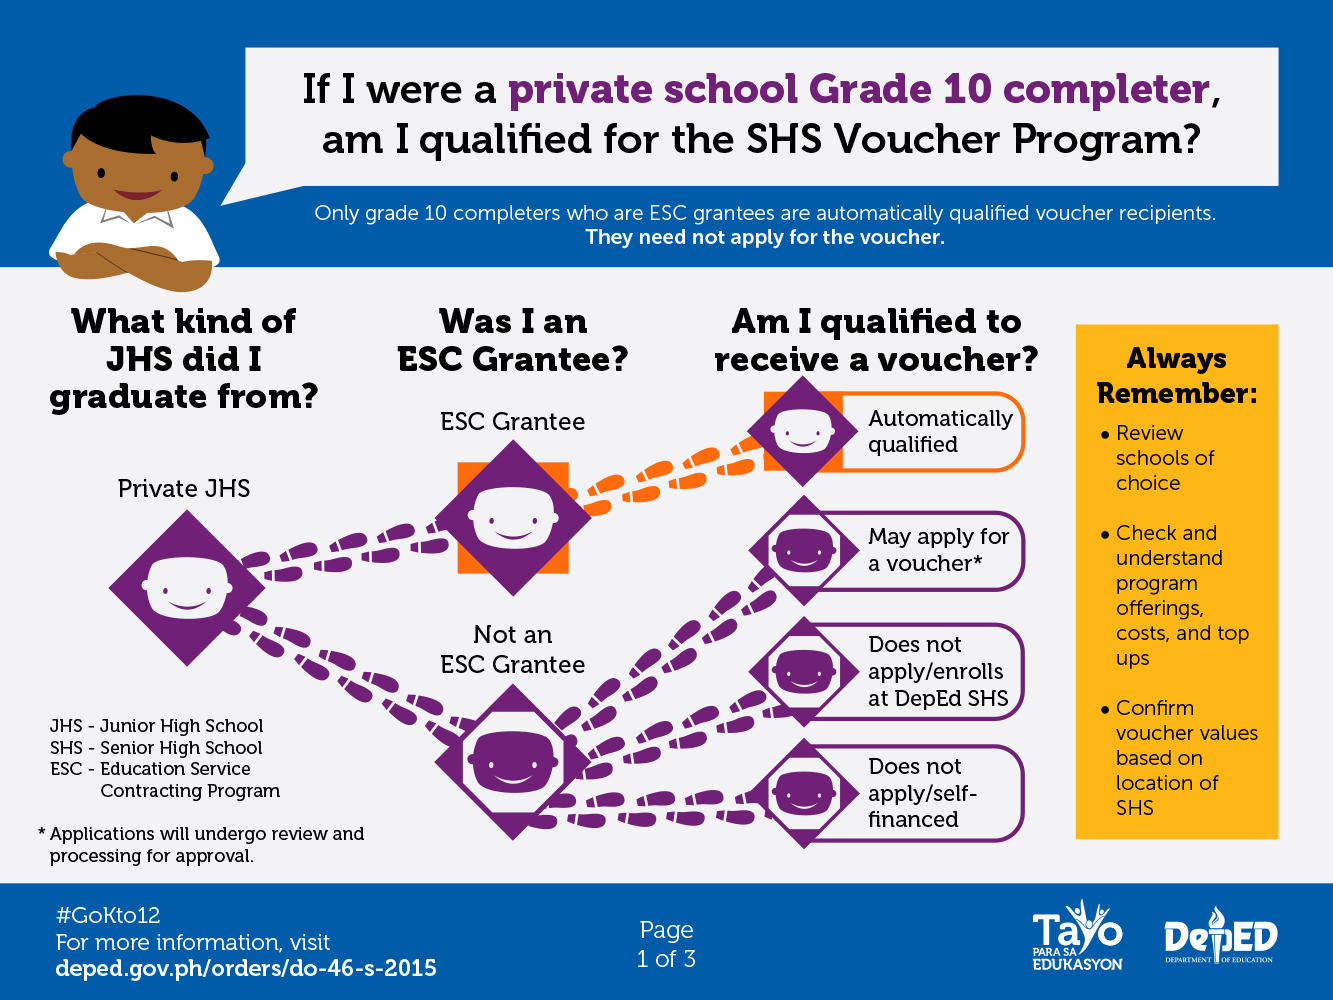 deped on twitter public grade 10 completers and esc grantees are deped on twitter public grade 10 completers and esc grantees are automatically qualified for the shs voucher program gokto12 t co 9fznc8ldfq